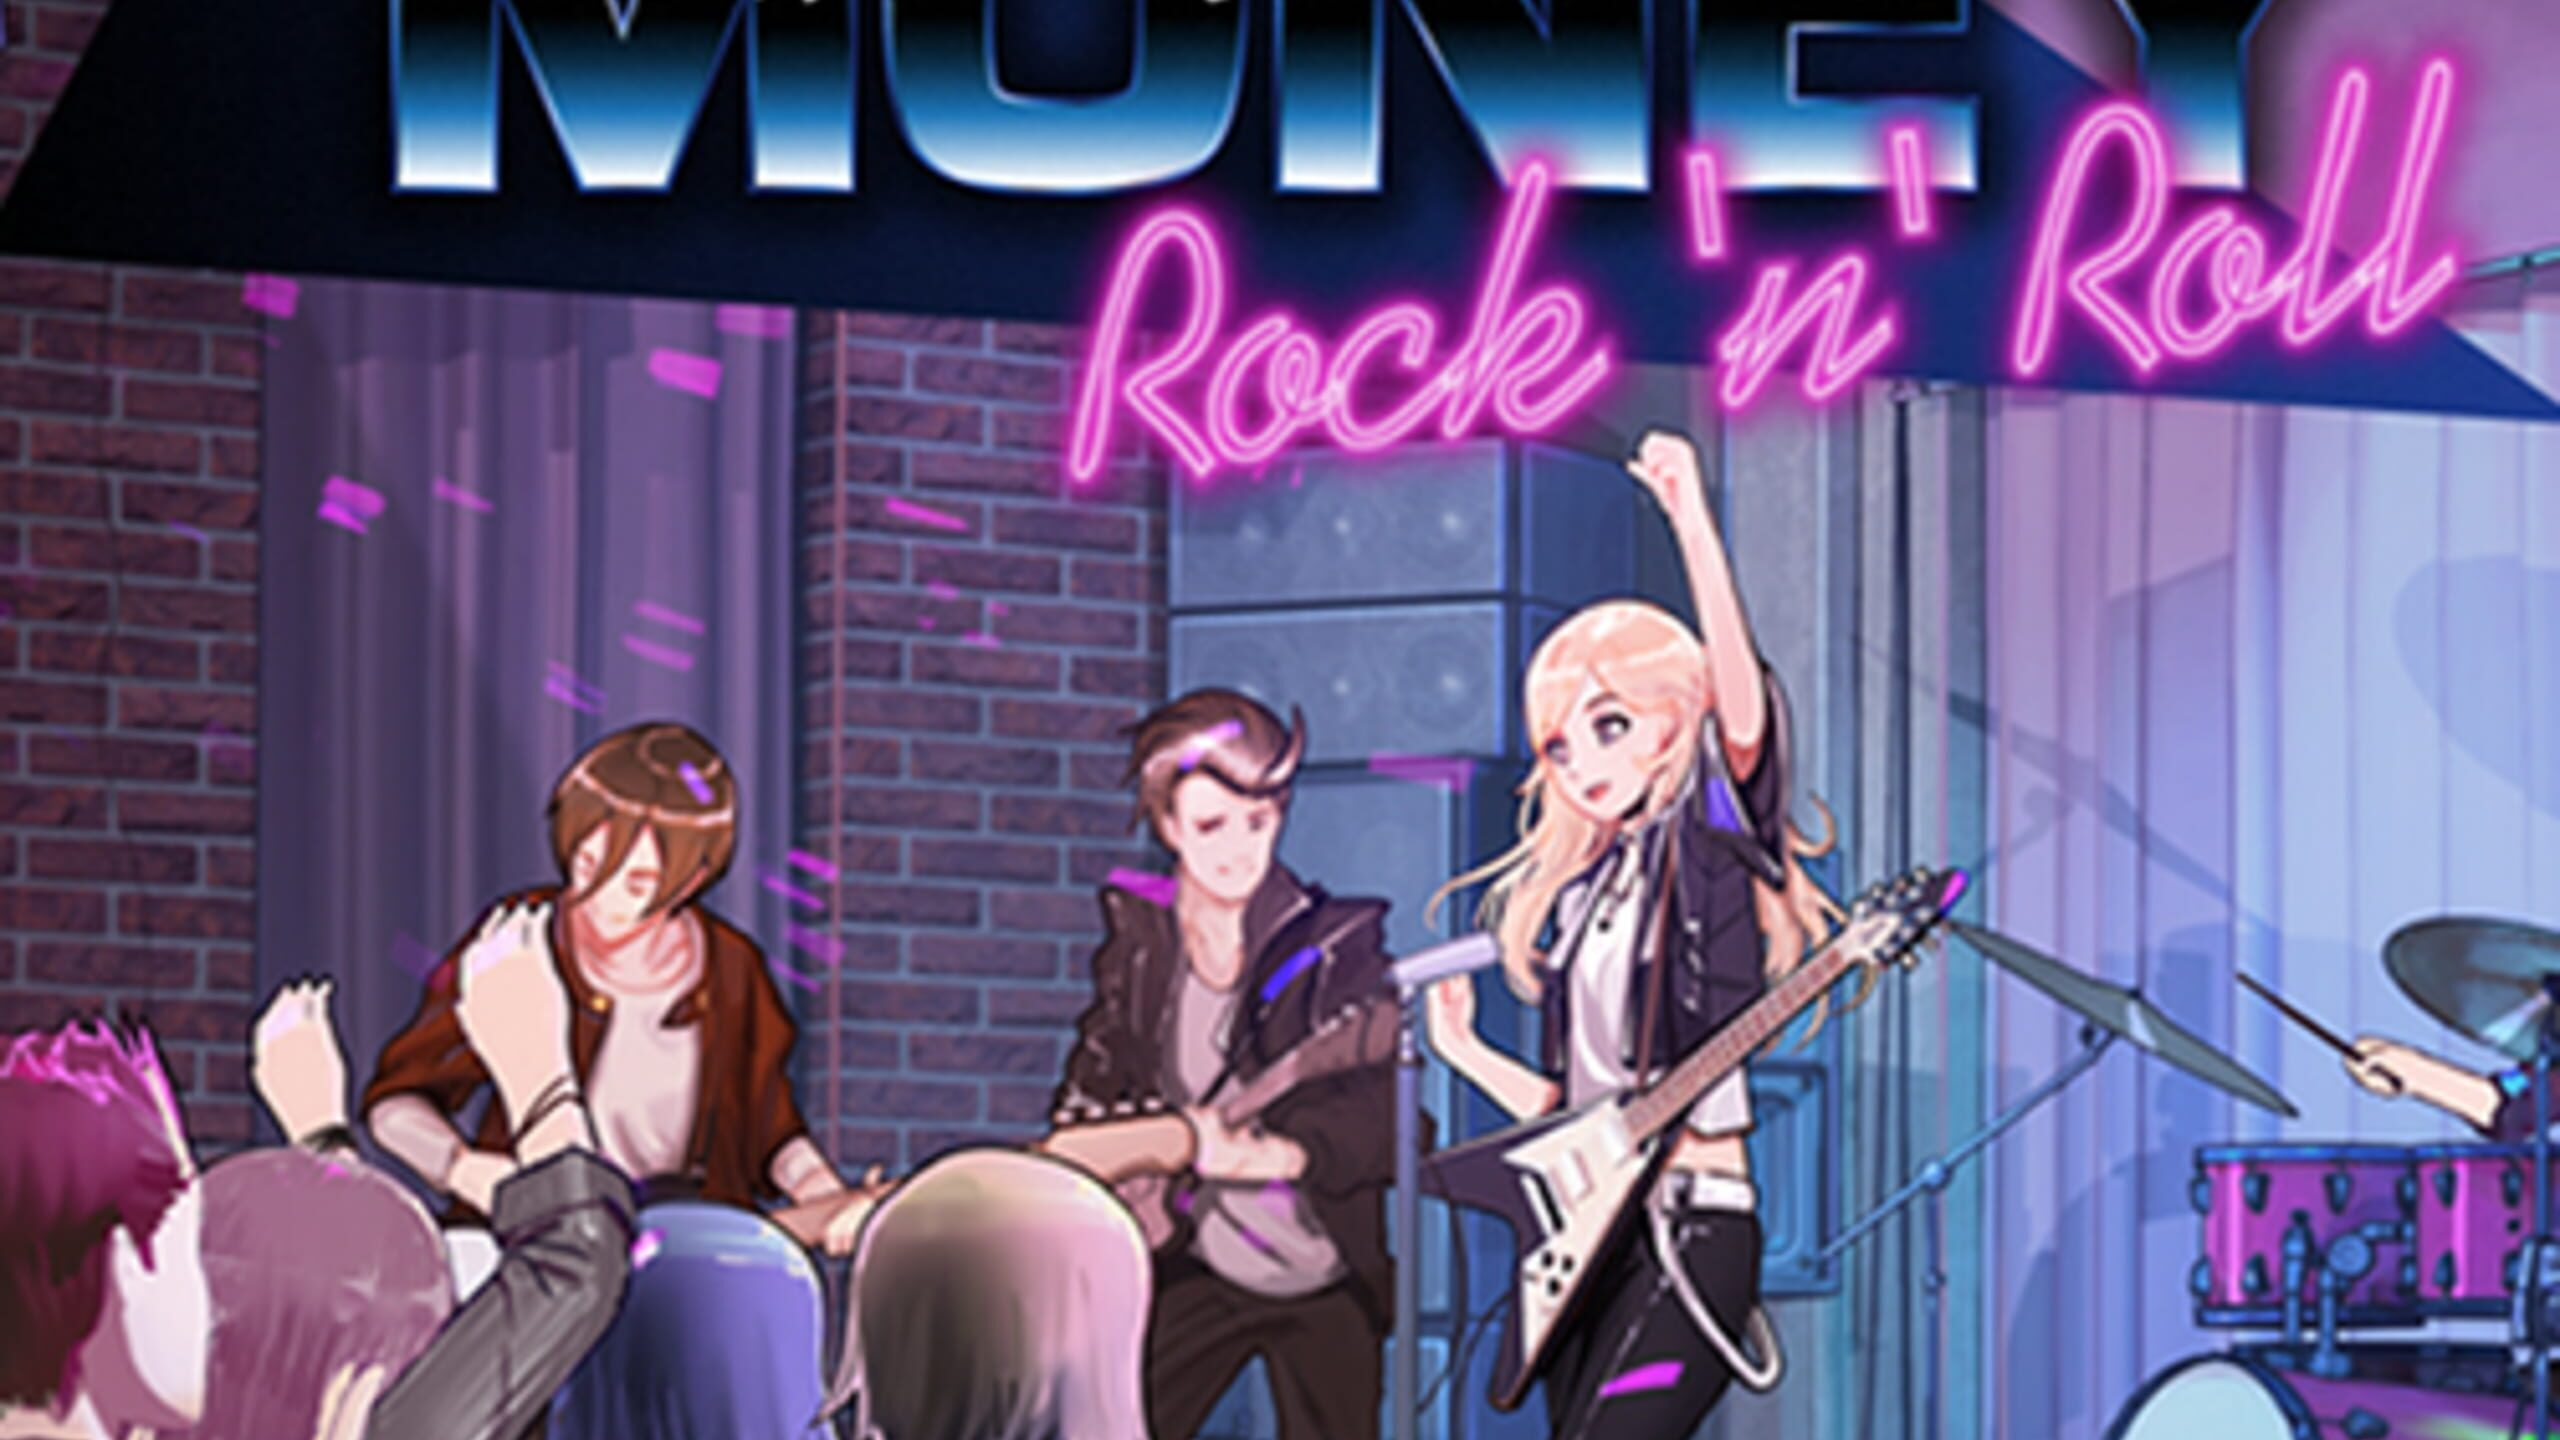 game cover art for Love, Money, Rock'n'Roll